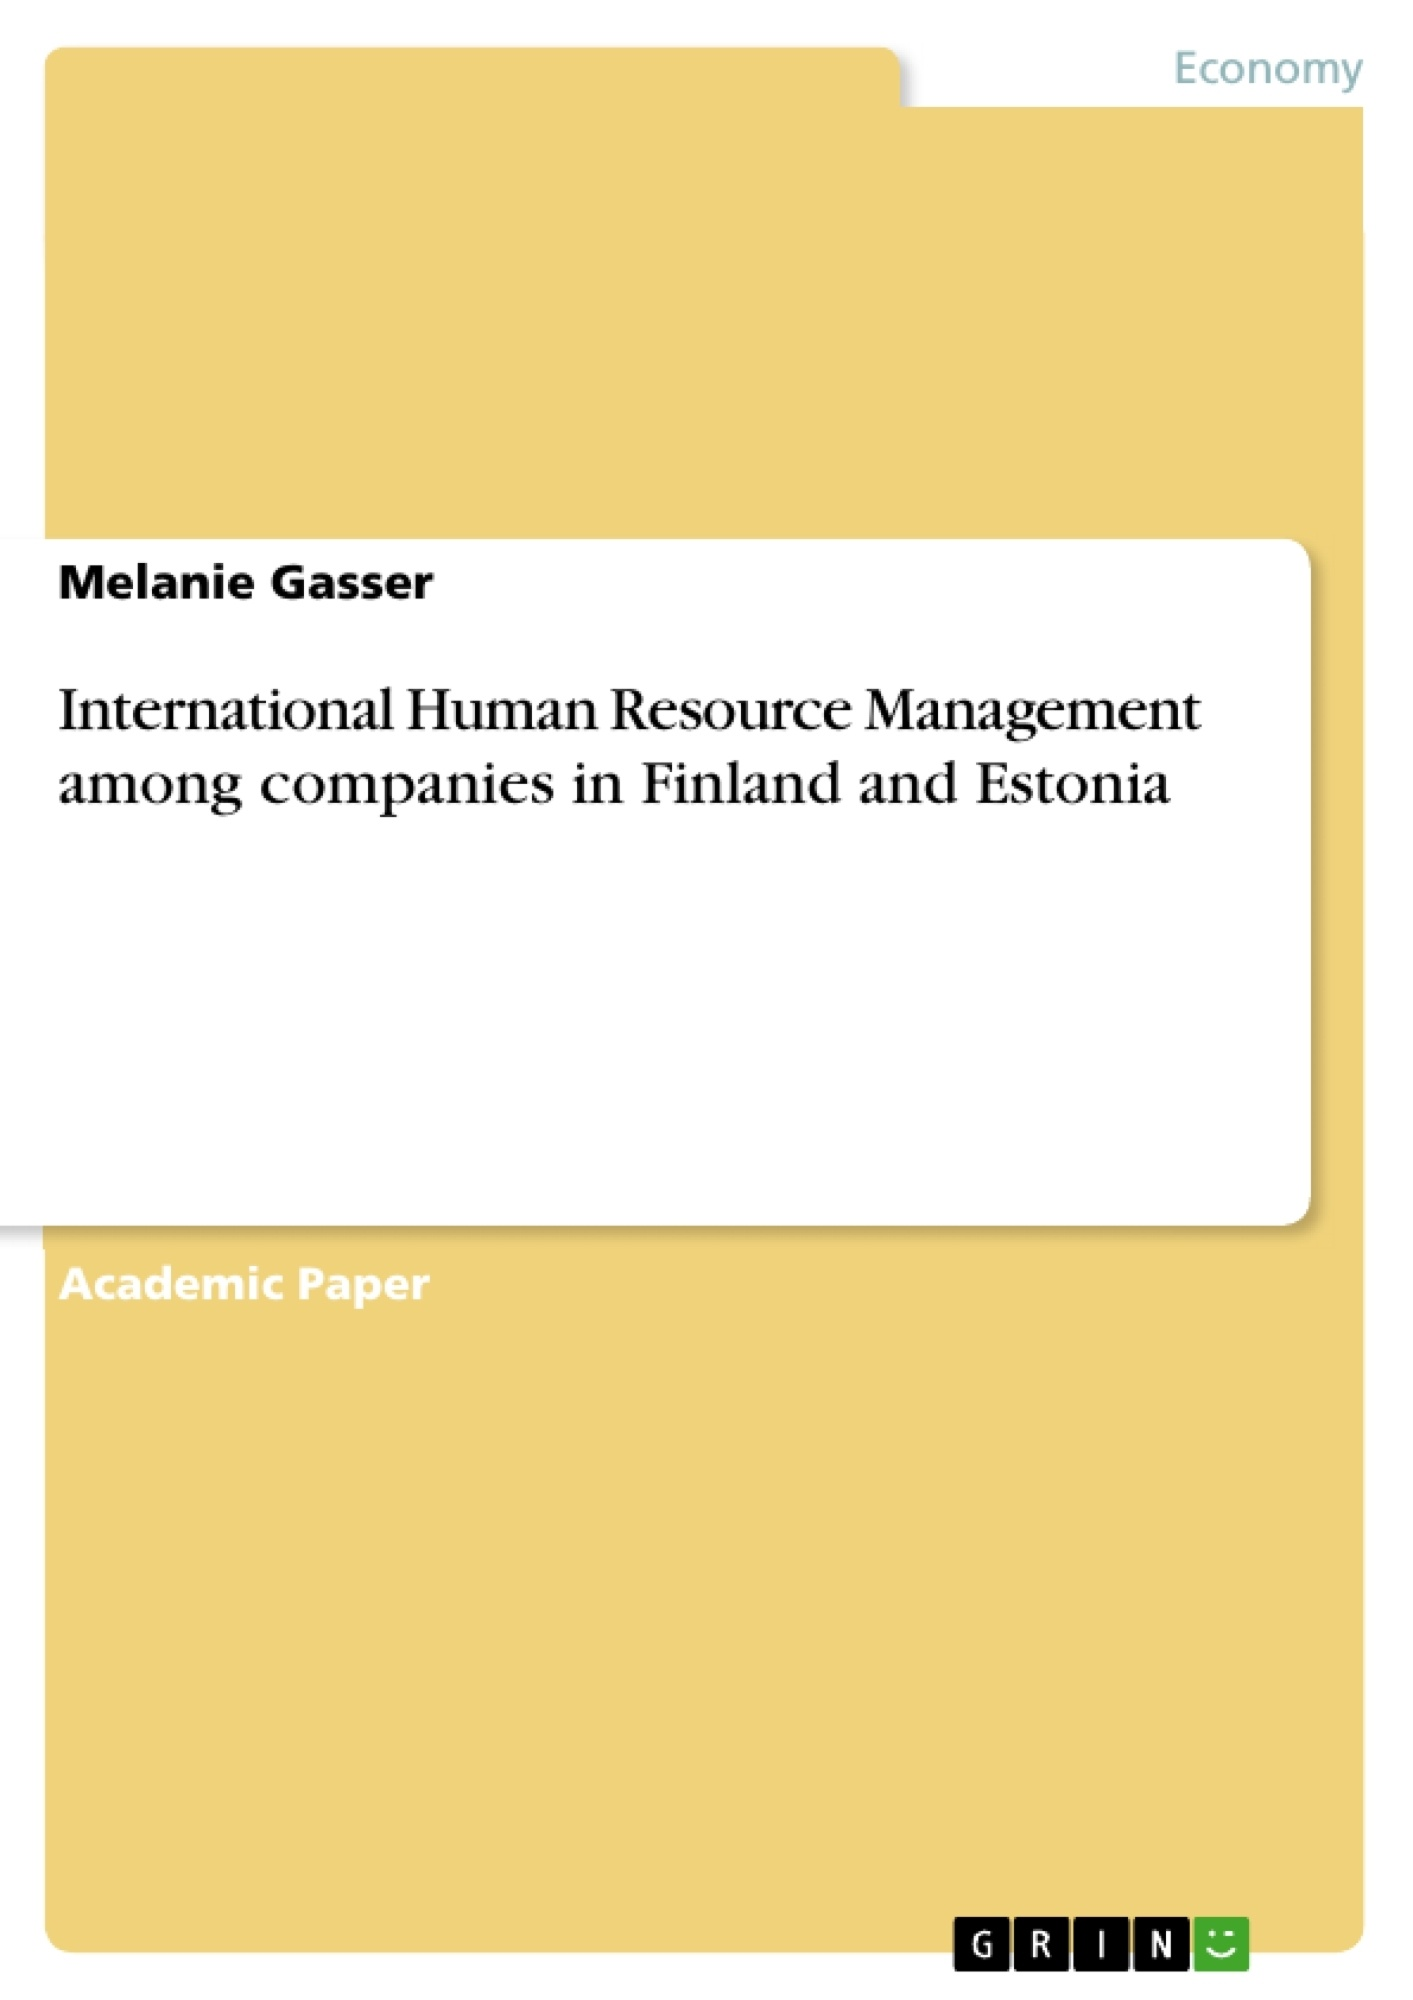 Title: International Human Resource Management among companies in Finland and Estonia